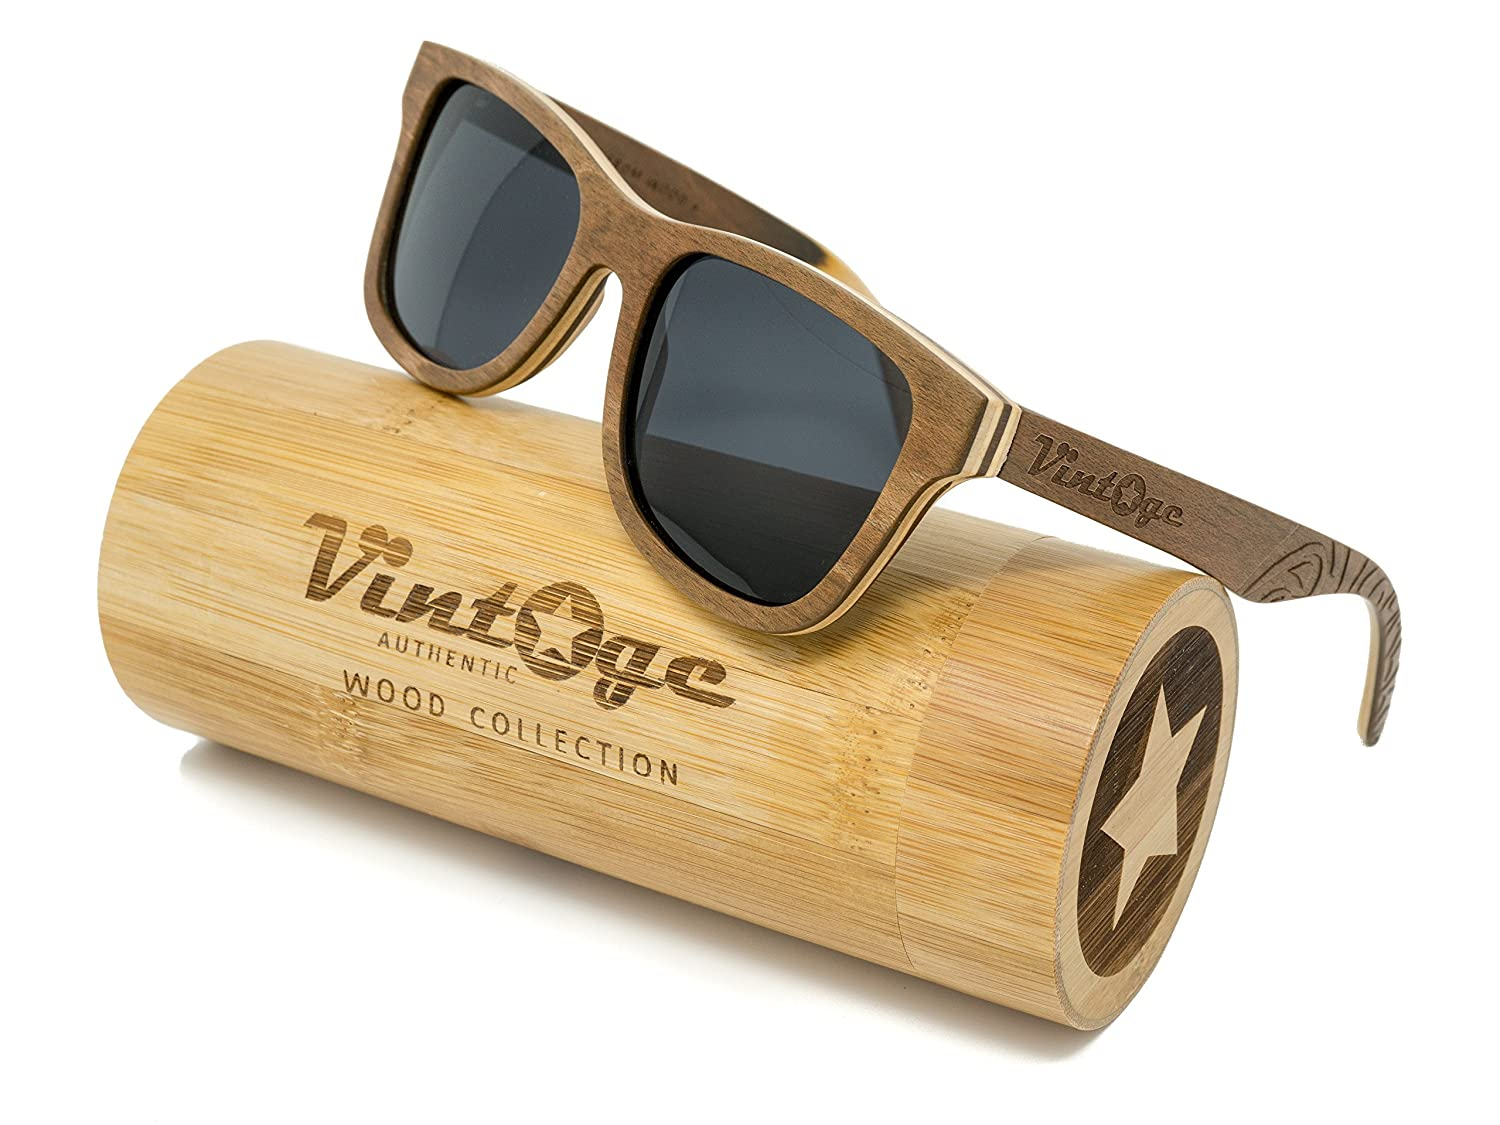 493f4845720 Amazon.com  Maple Cherry Wood Sunglasses for Men   Women - Polarized  handmade wooden wayfarer style shades that float!  Sports   Outdoors